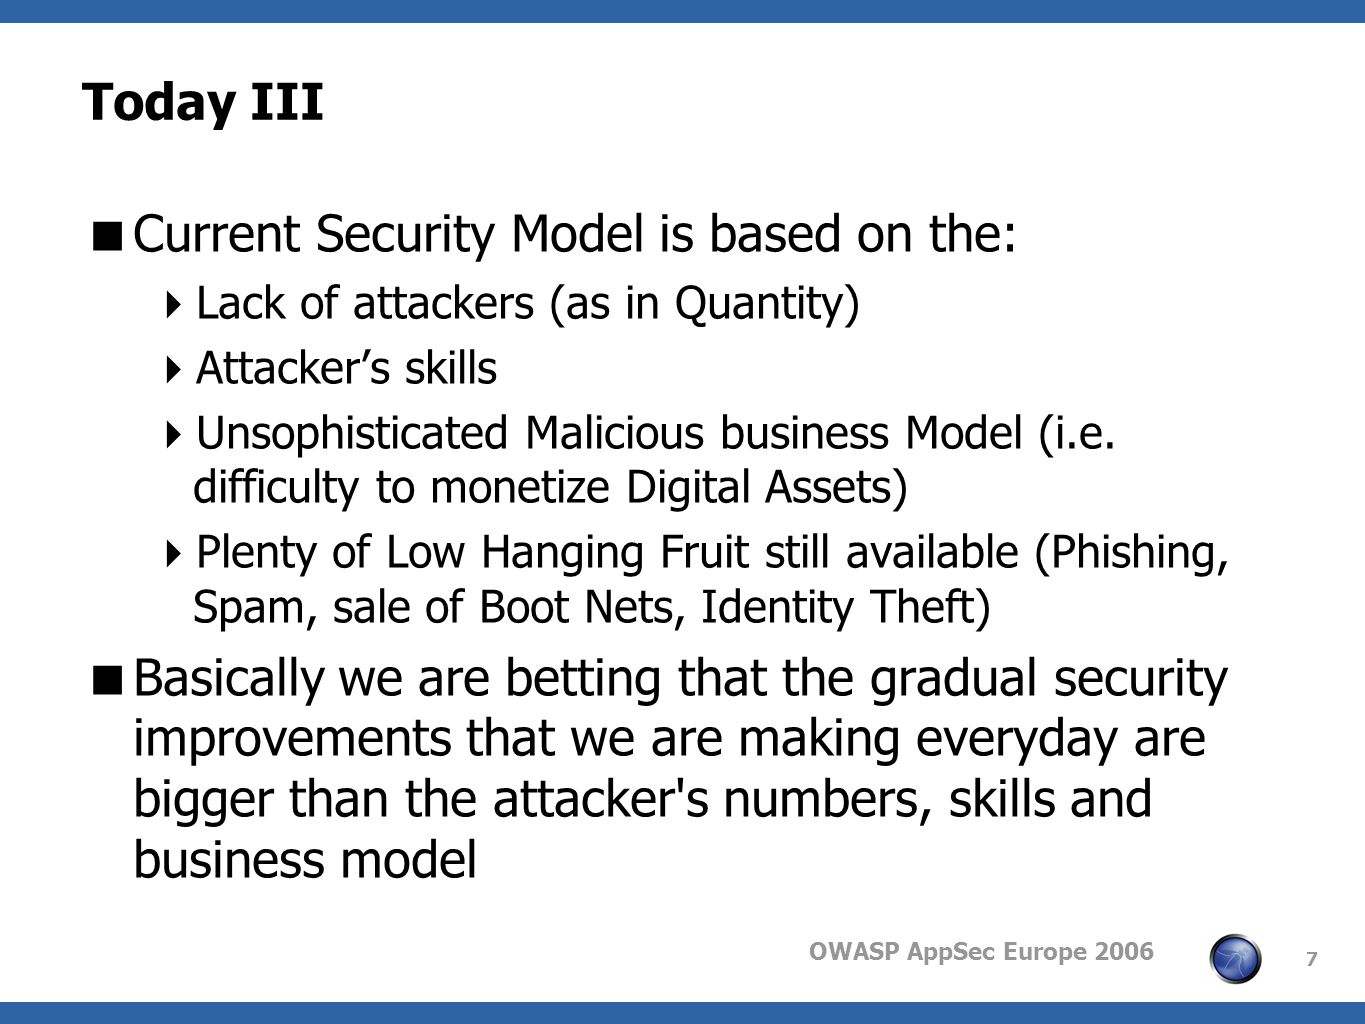 OWASP AppSec Europe 2006 7 Today III Current Security Model is based on the: Lack of attackers (as in Quantity) Attackers skills Unsophisticated Malic